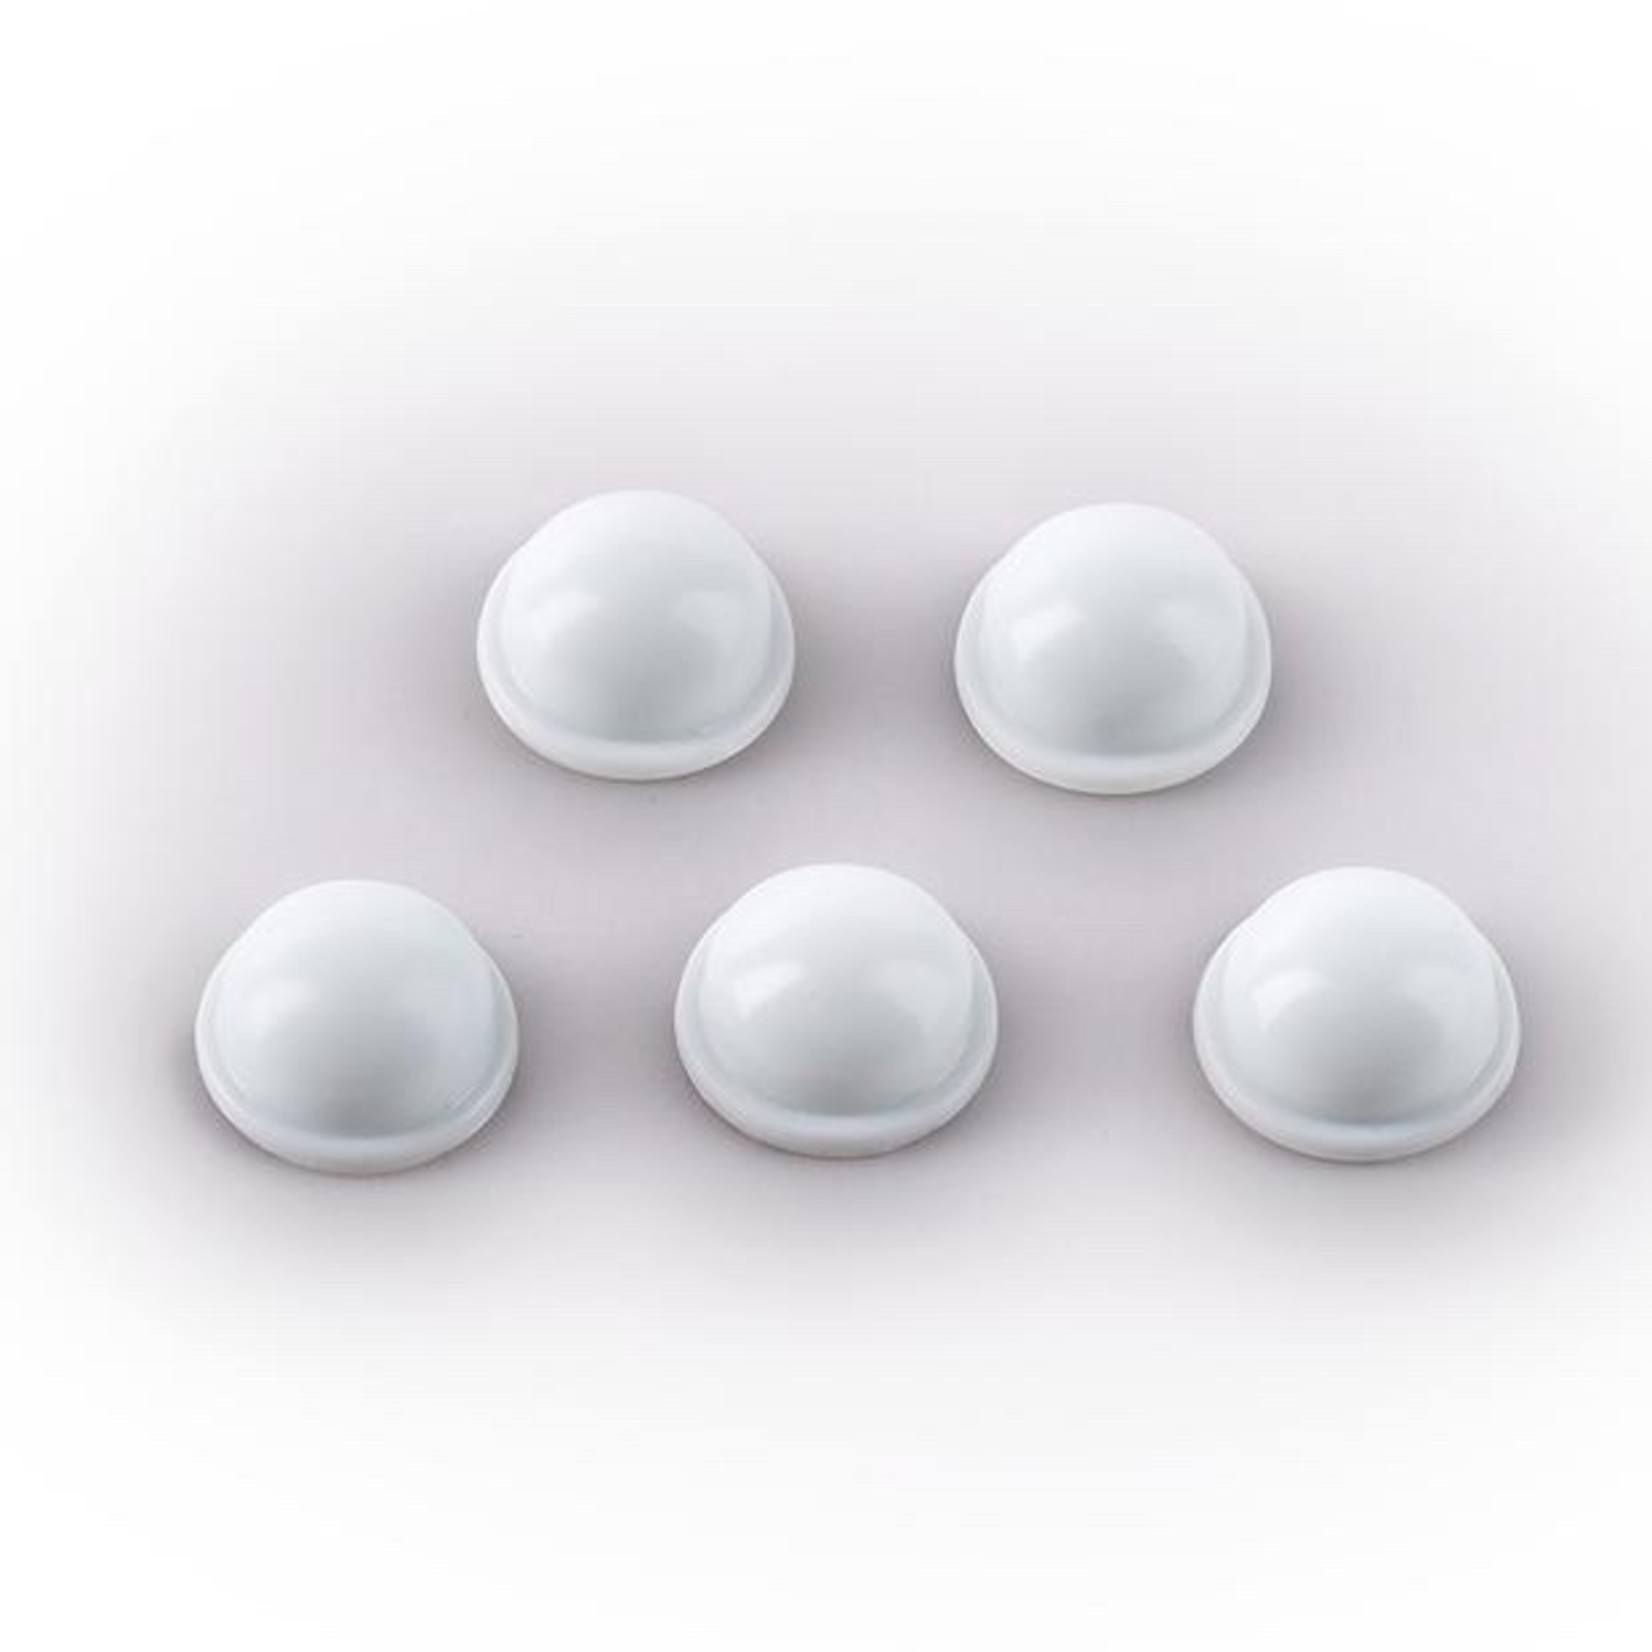 Rockboard Rockboard LED Dampers, Small 8mm (package of 5 refractive domes) - Dim your bright pedal lights!